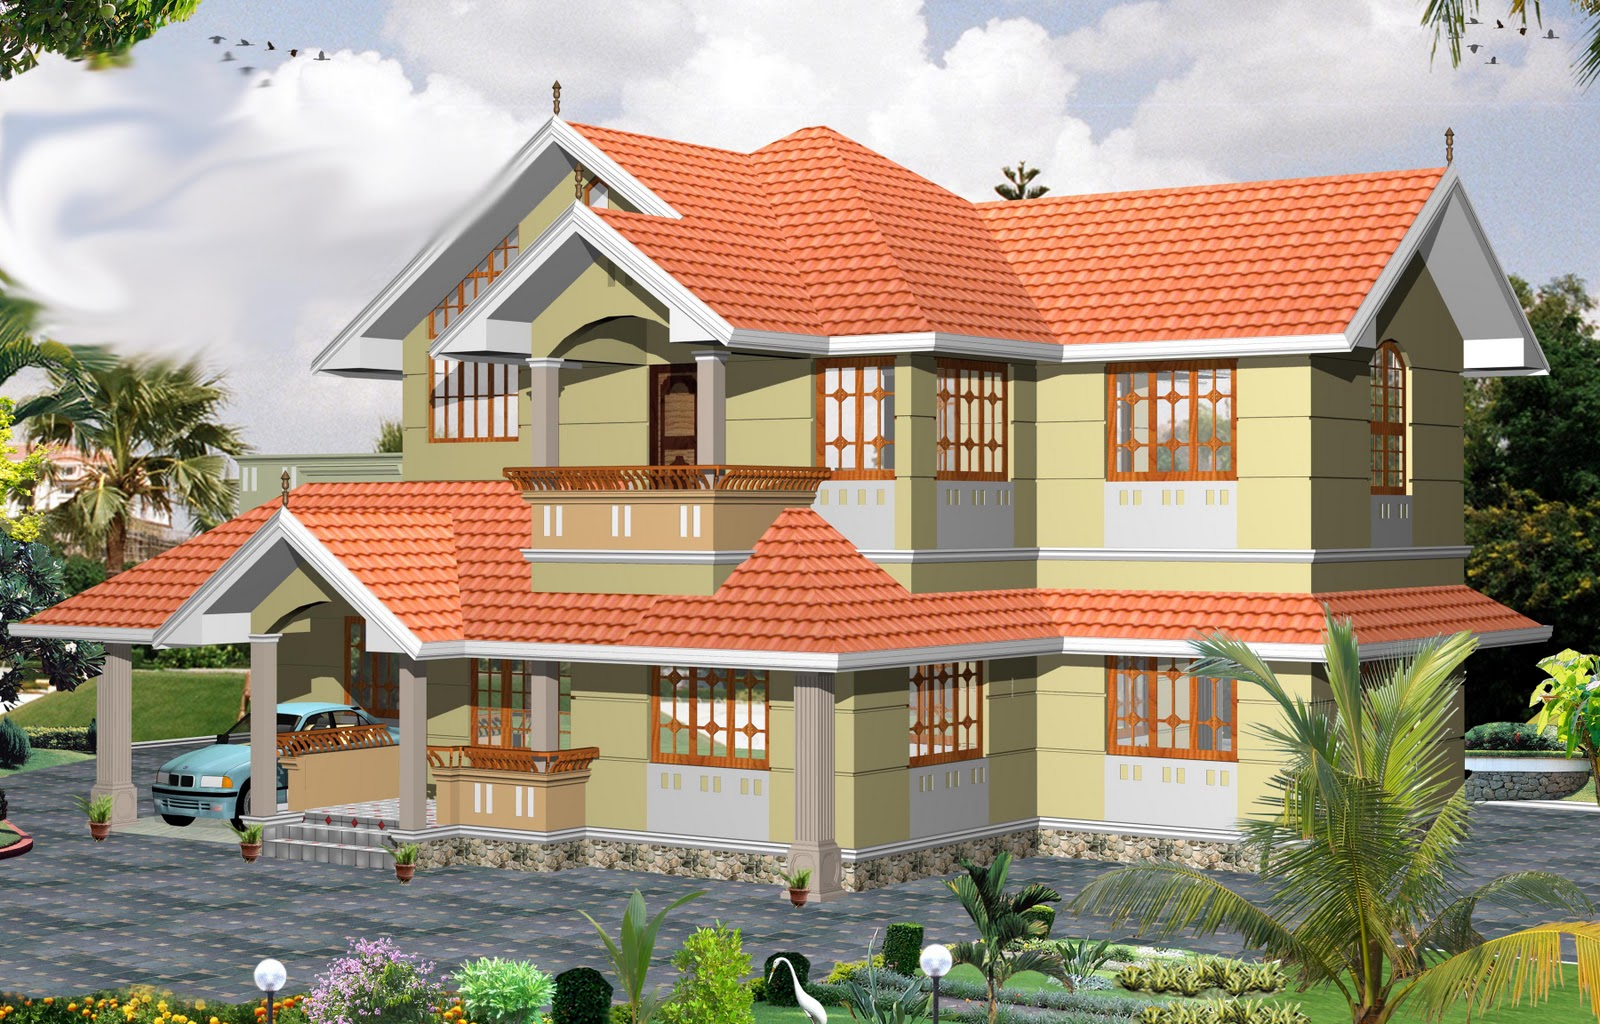 Kerala Building Construction 2000 Sqft 3bhk House Plan Kerala Home Floor Plans With Photo: new build house designs